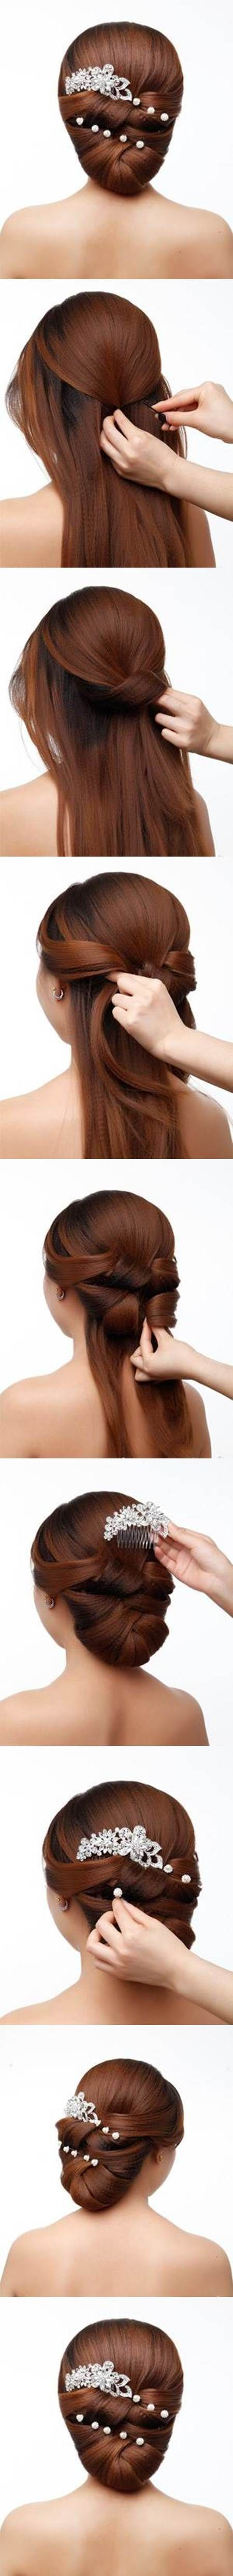 DIY Elegant Bridal Hairstyle 2: